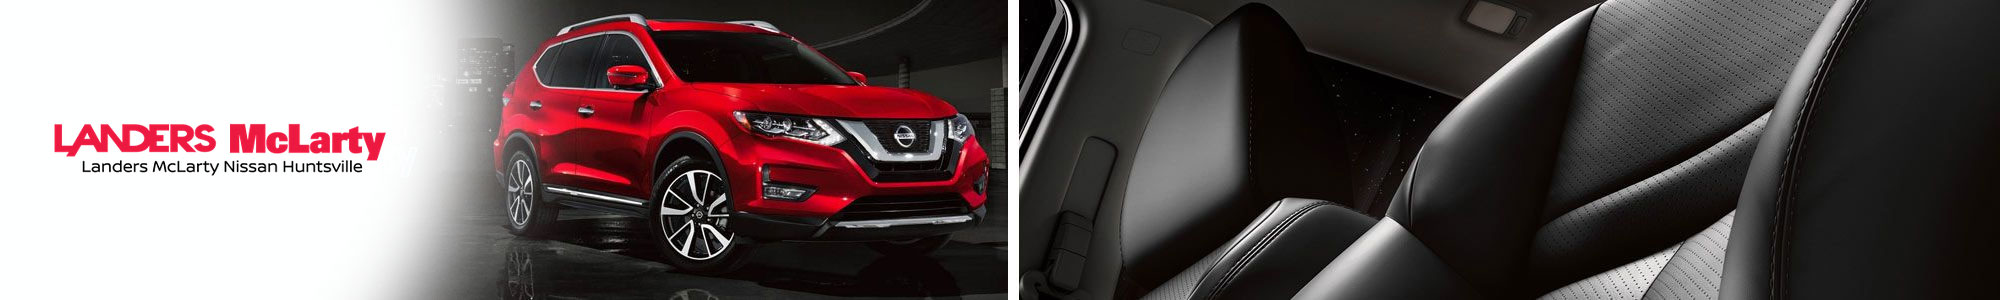 Research the 2019 Nissan Rogue at Landers McLarty Nissan in Huntsville AL